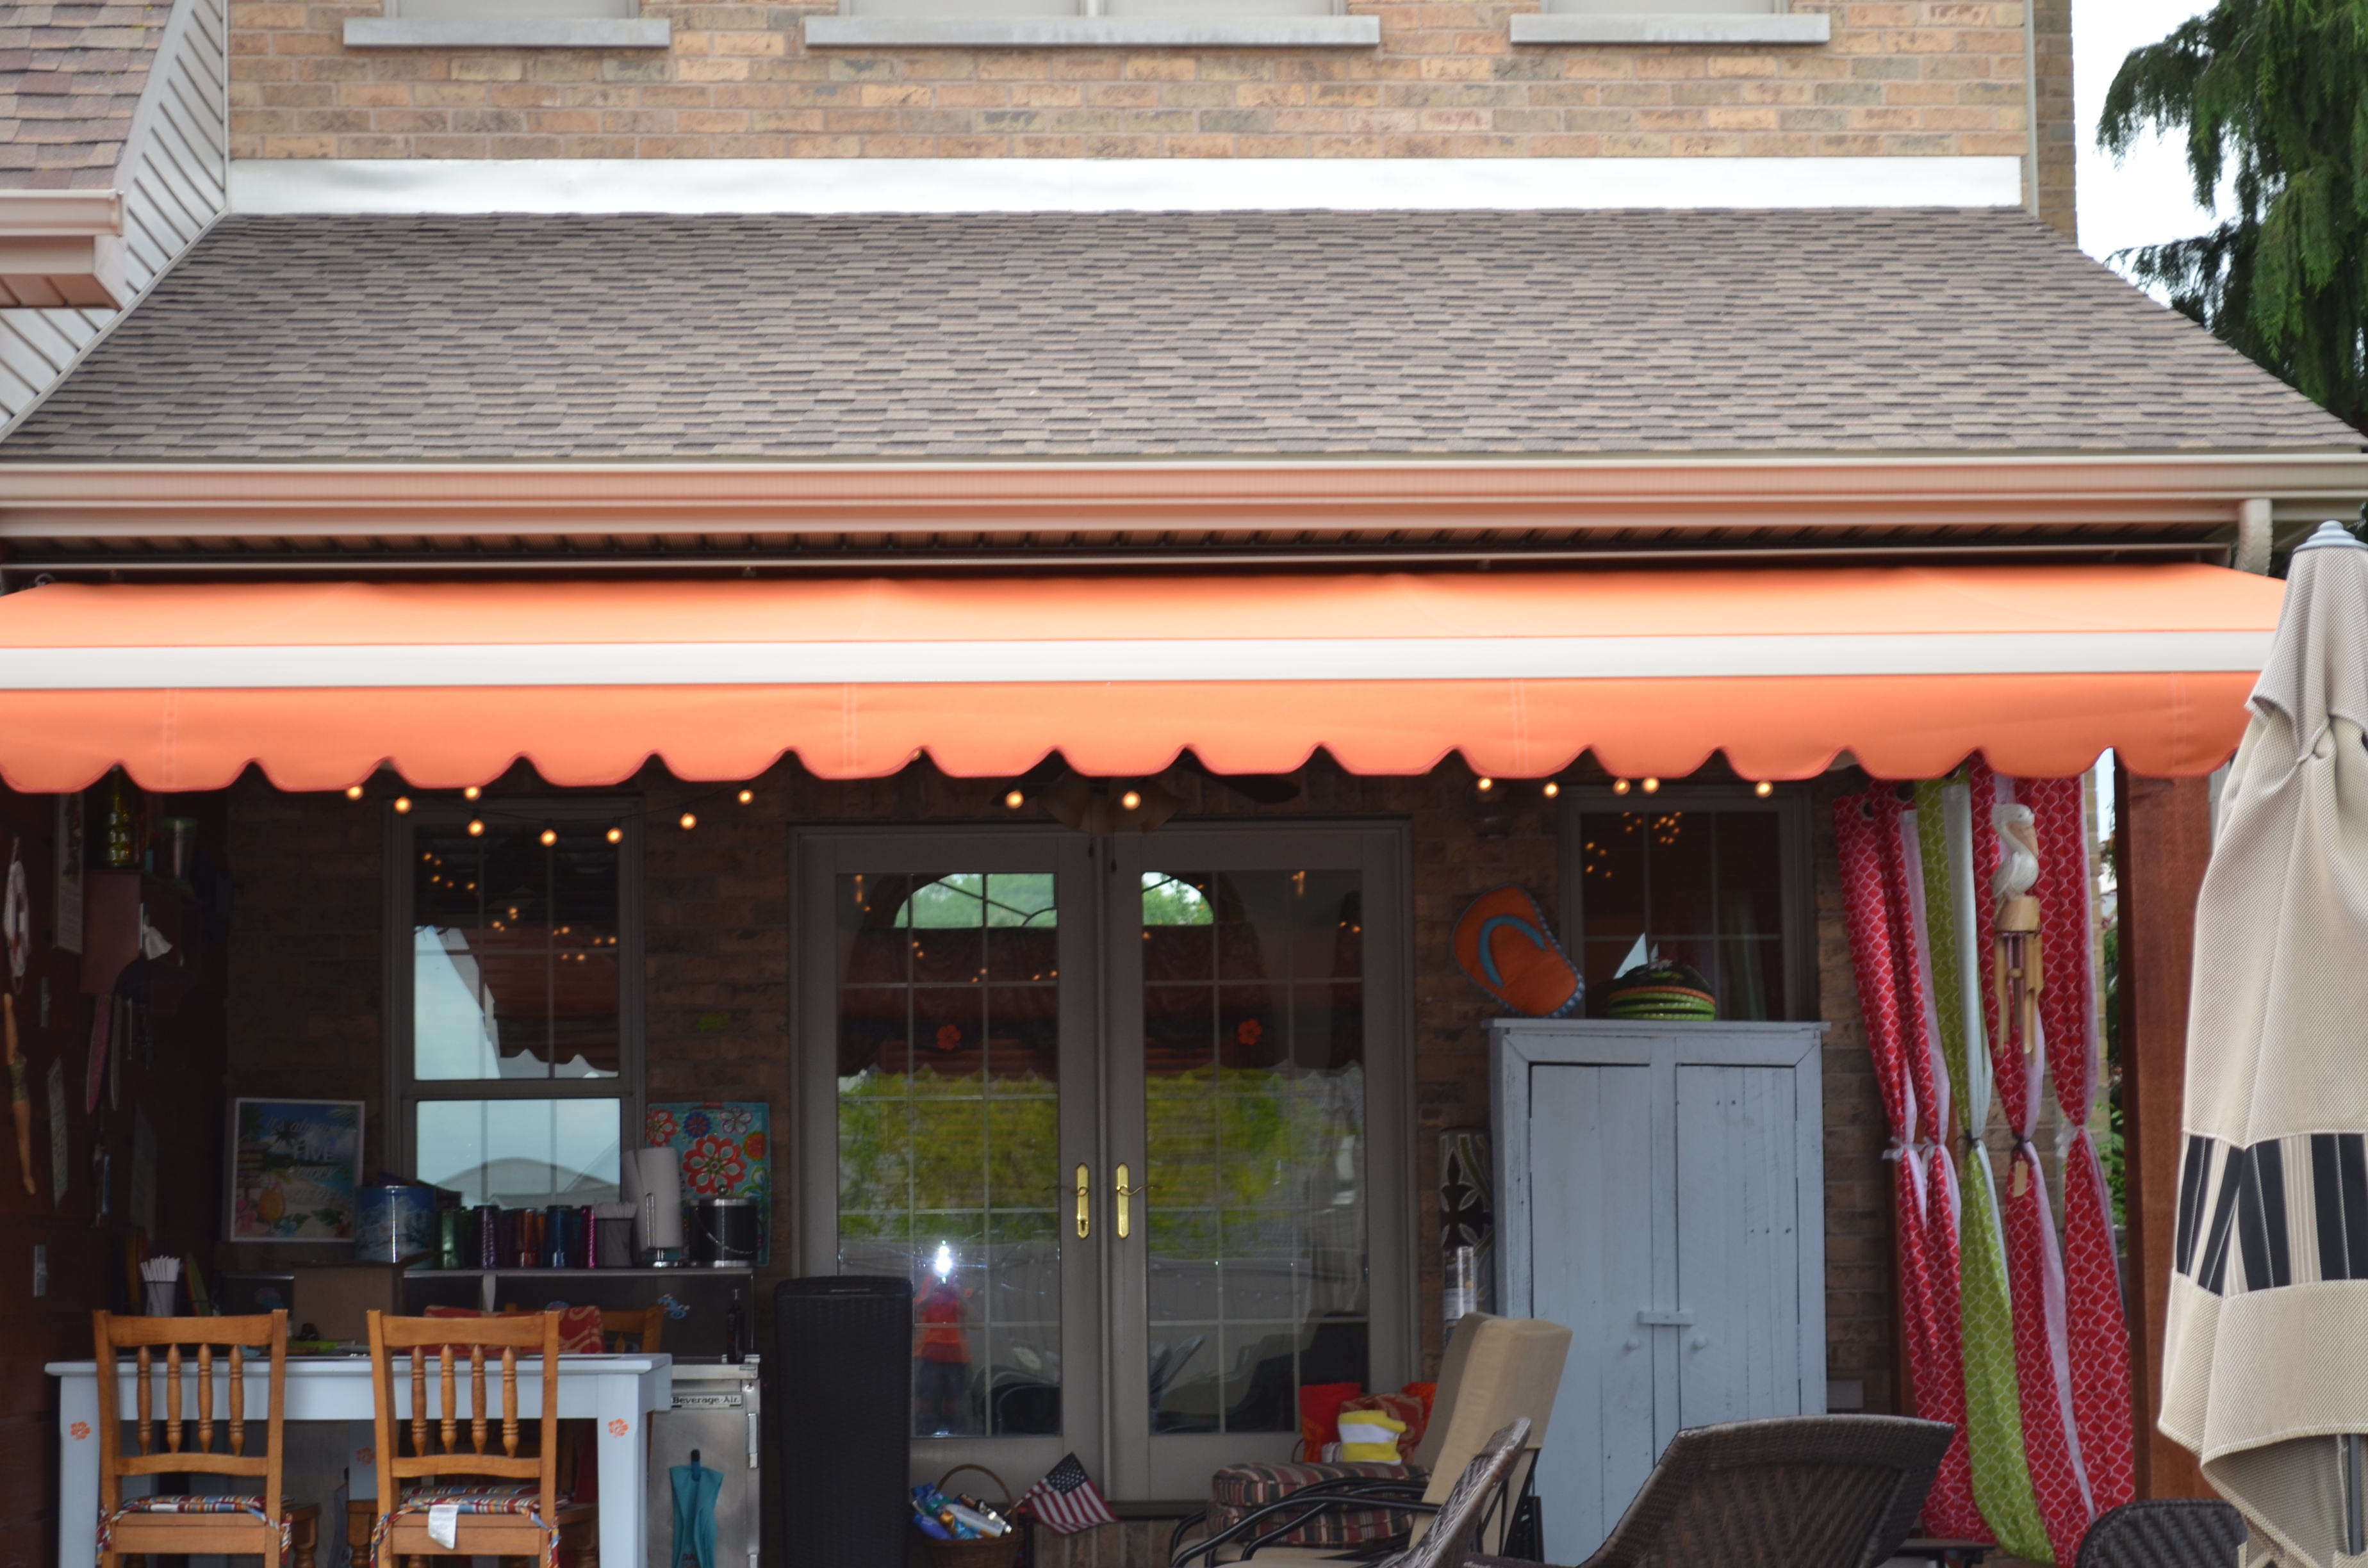 Pestelak awning (15)